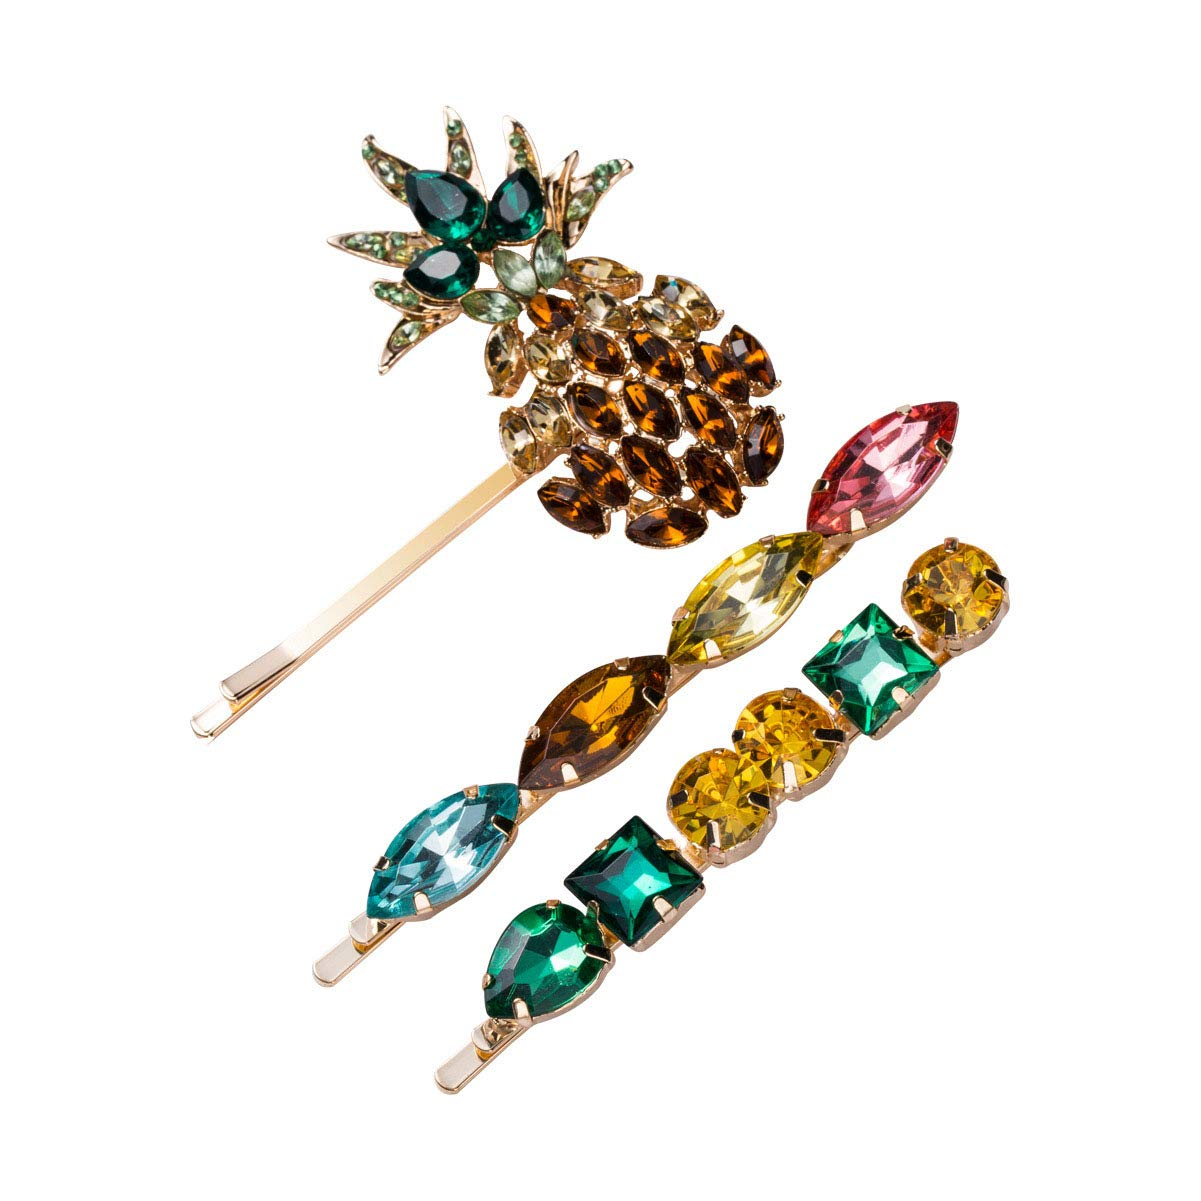 Set of 3 Rhinestone Crystal Pineapple Bangs Hair Clip Barrettes Bobby Pins for Women - Fashion Alloy Side Clip Hairpin Hair Accessories